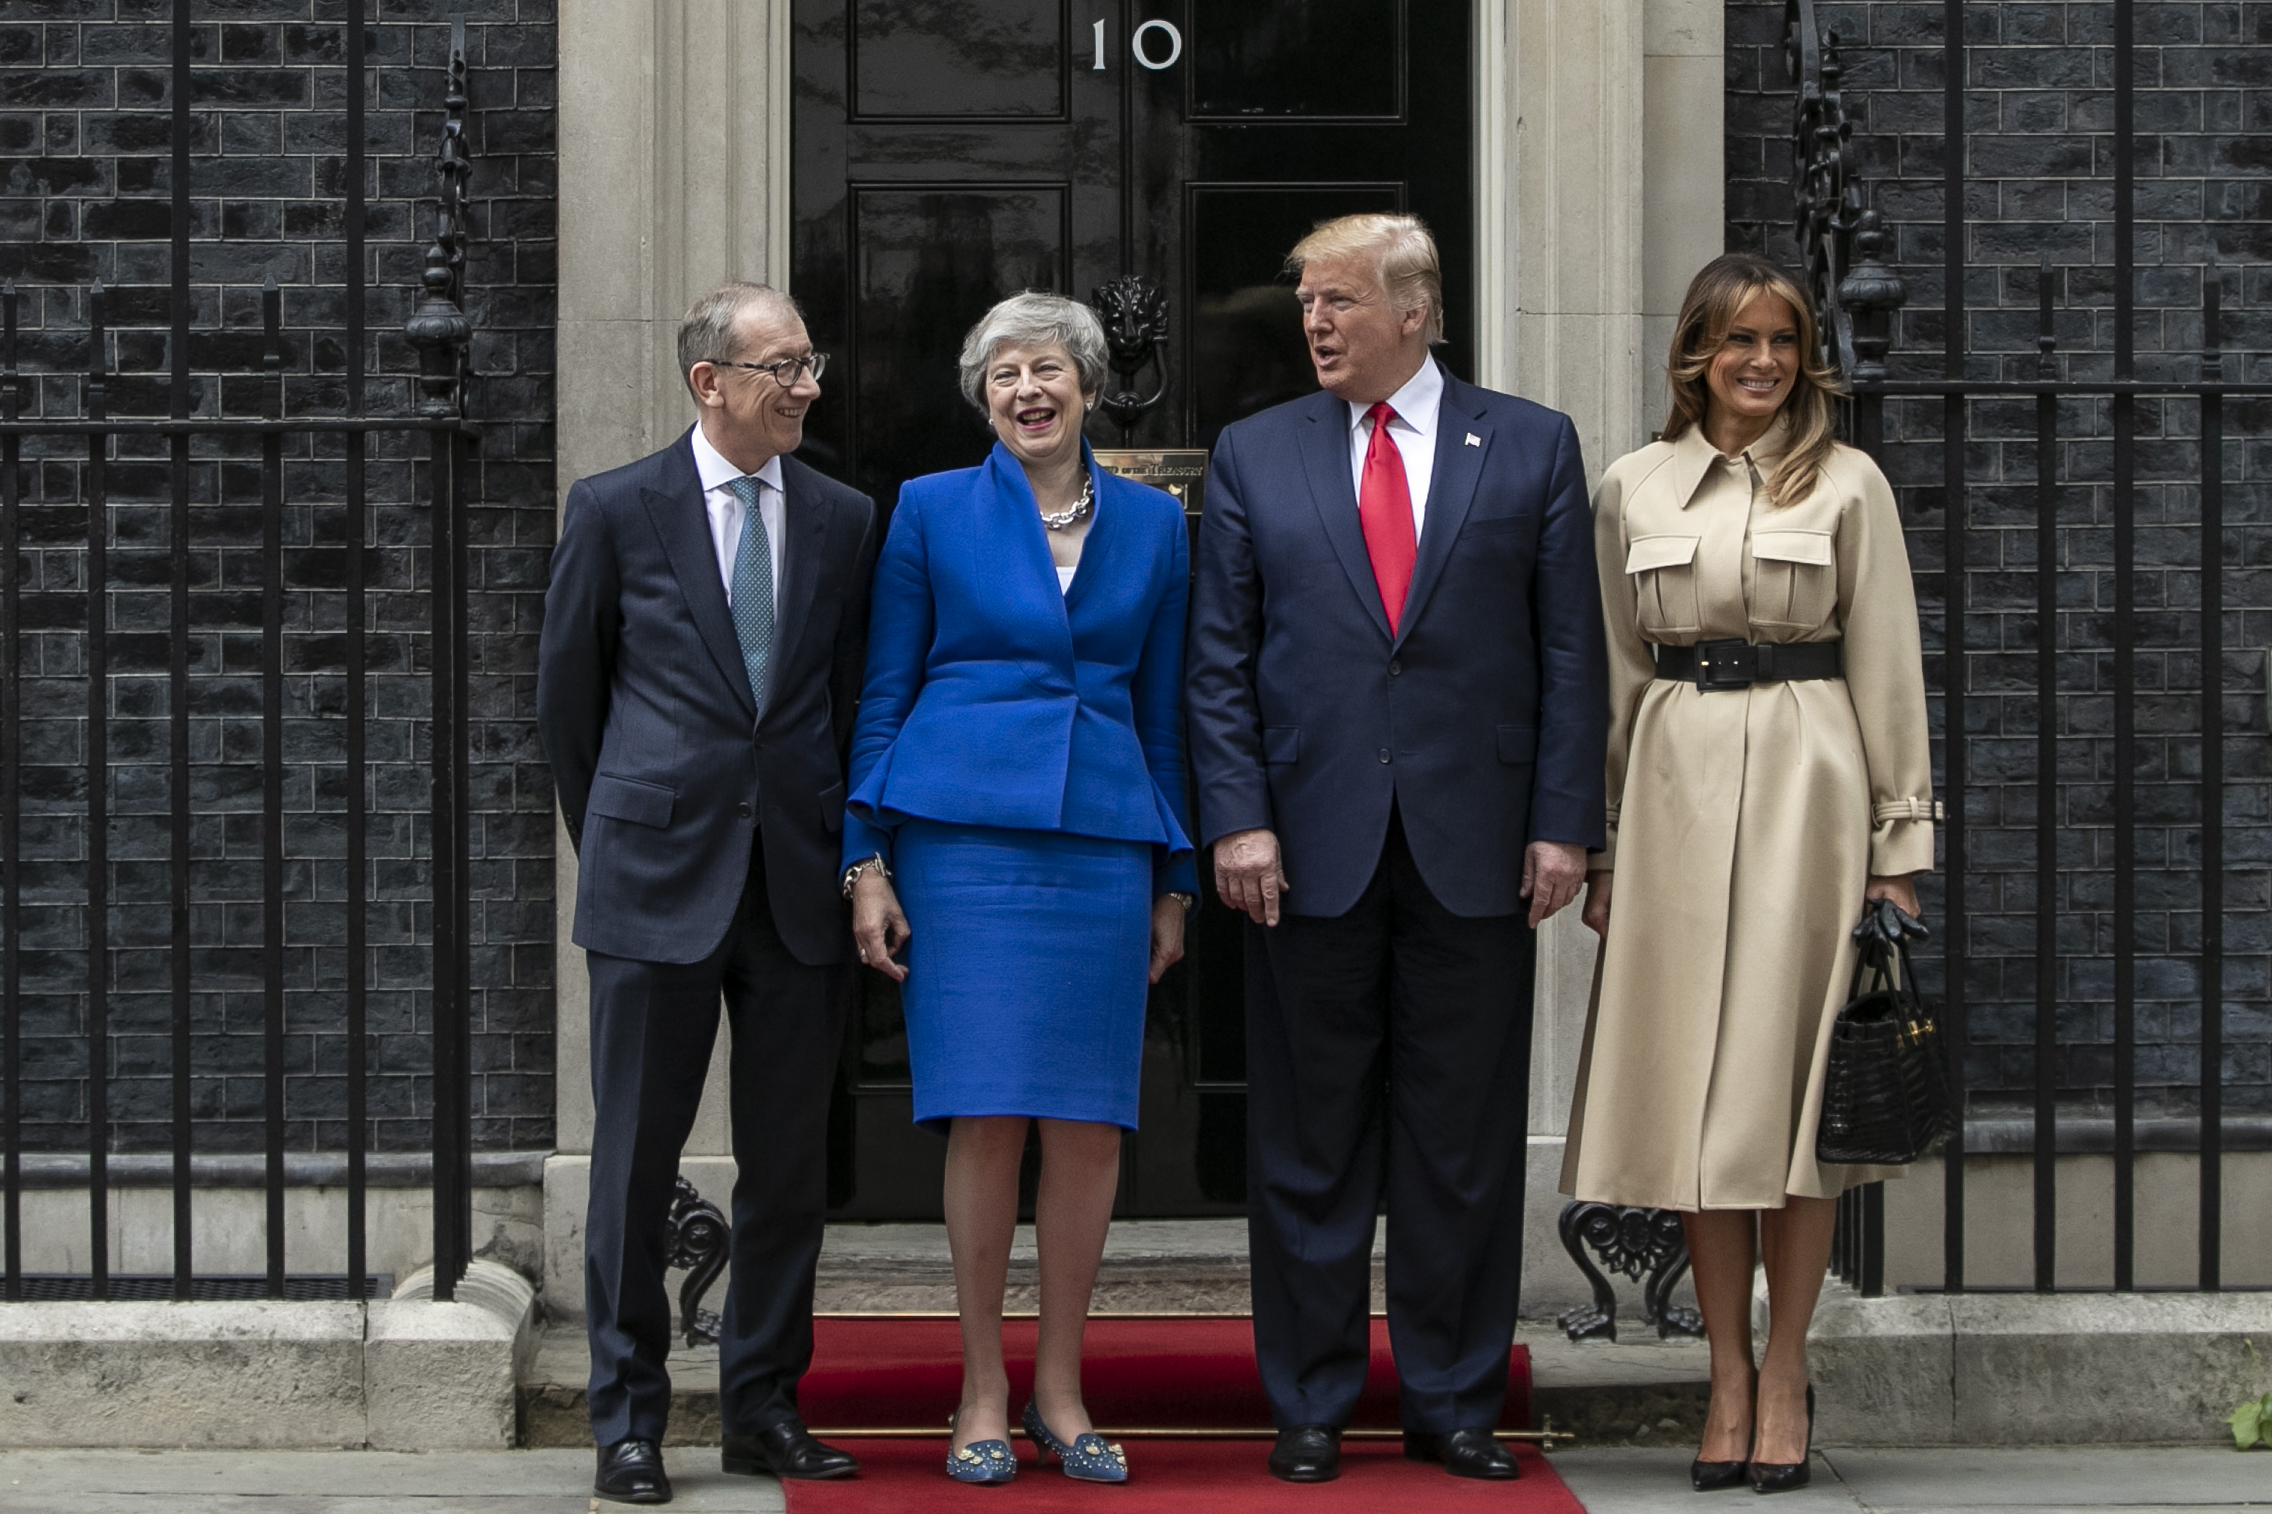 (L-R) Philip May, British Prime Minister Theresa May, U.S. President Donald Trump and First Lady Melania Trump arrive at 10 Downing street for a meeting on the second day of the U.S. President and First Lady's three-day State visit on June 4, 2019 in London, England. (Dan Kitwood/Getty Images)